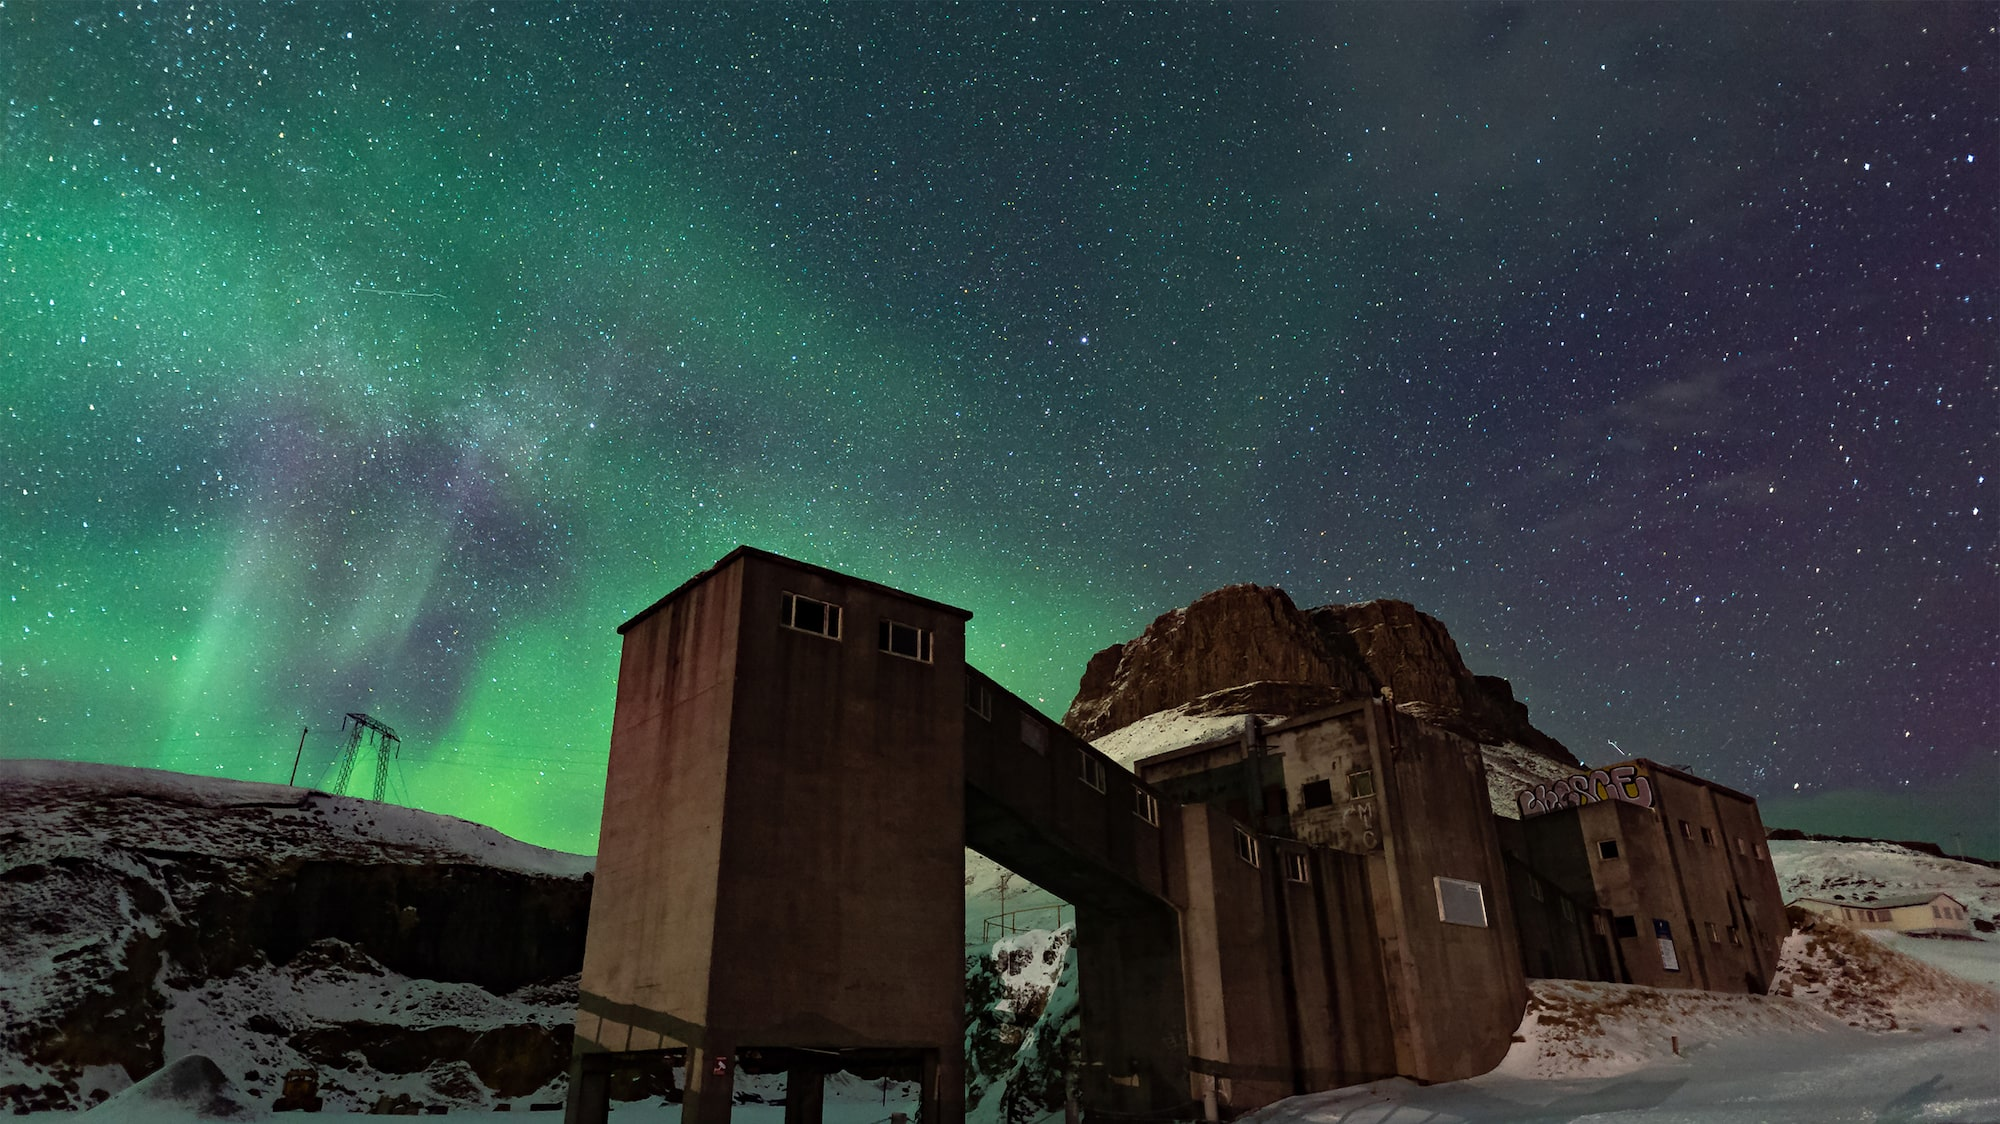 steve collins sony alpha 7SII aurora and stars hang over a wooden building in iceland